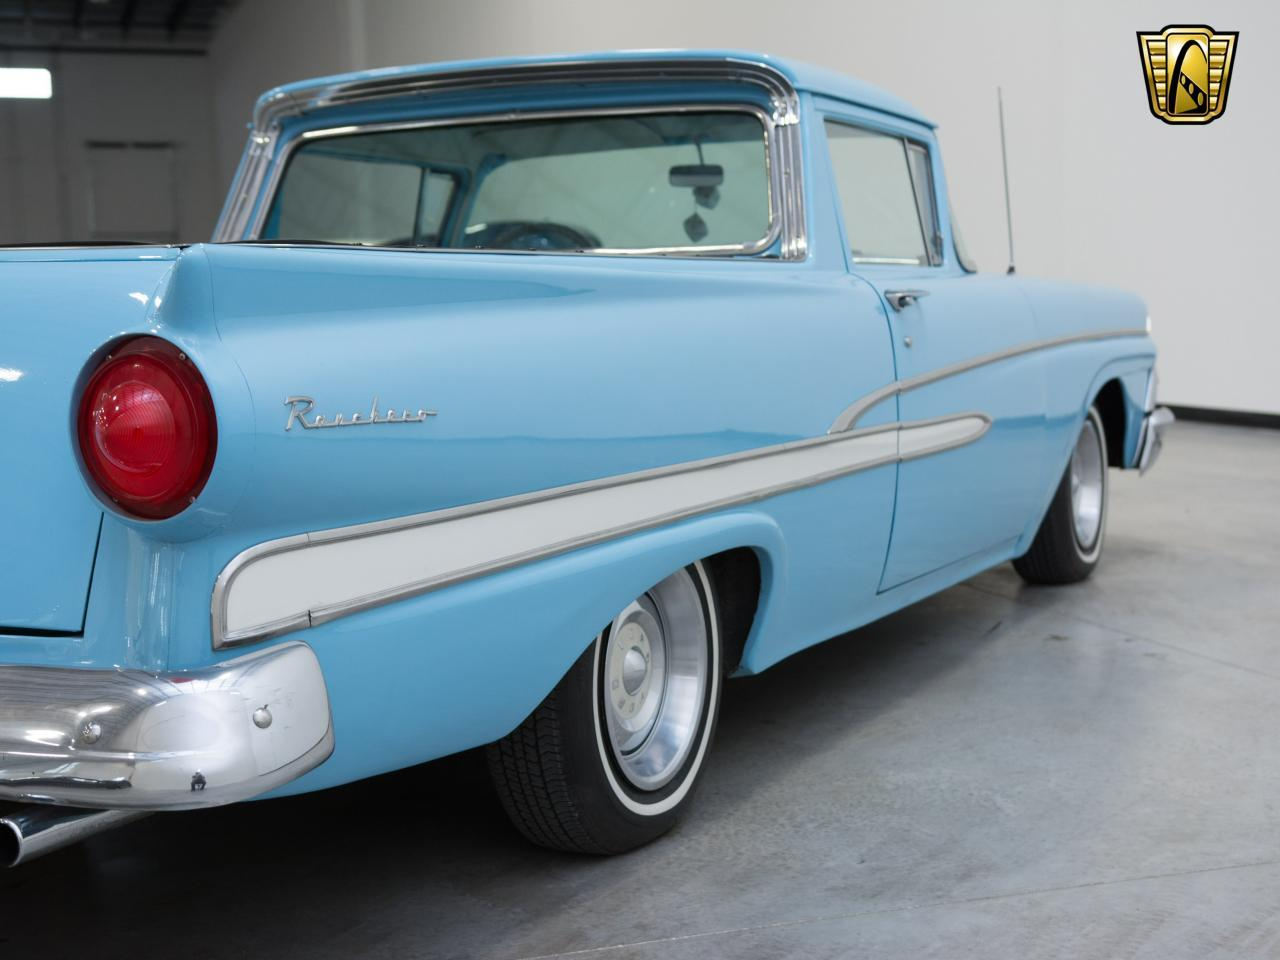 Large Picture of Classic 1958 Ford Ranchero located in Kenosha Wisconsin - KH0V